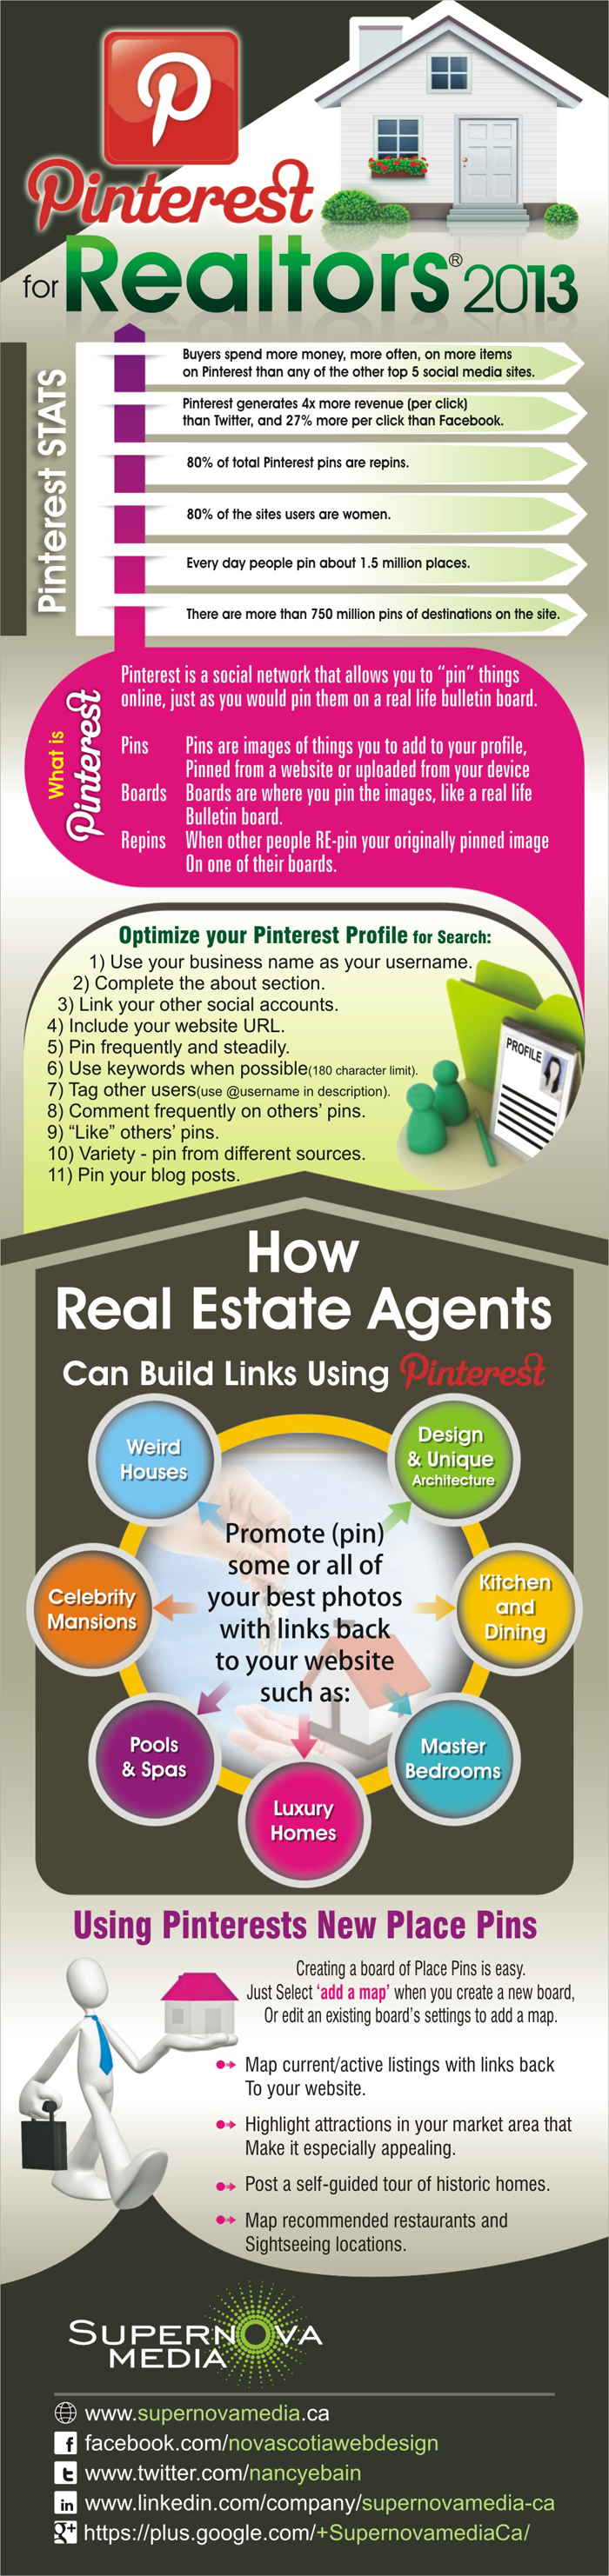 Pinterest for real estate agents w/infographic by: Supernova Media